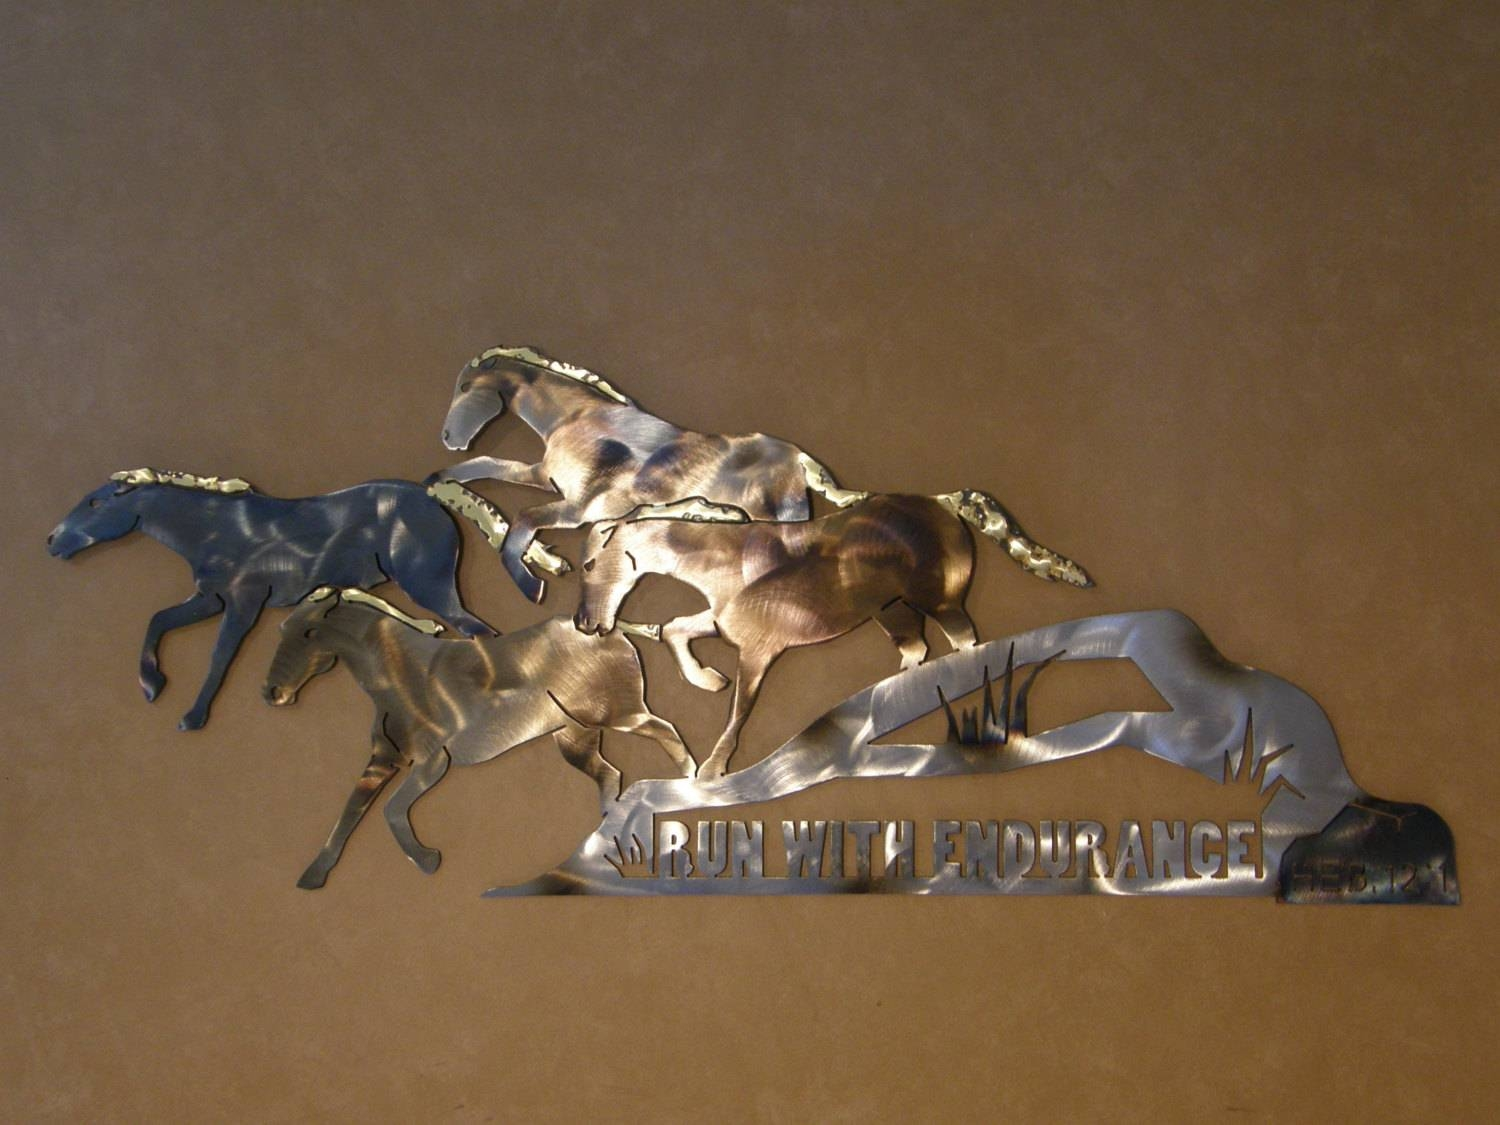 Christian Metal Wall Art Sculpture Of Running Horses Regarding Recent Horses Metal Wall Art (View 1 of 20)